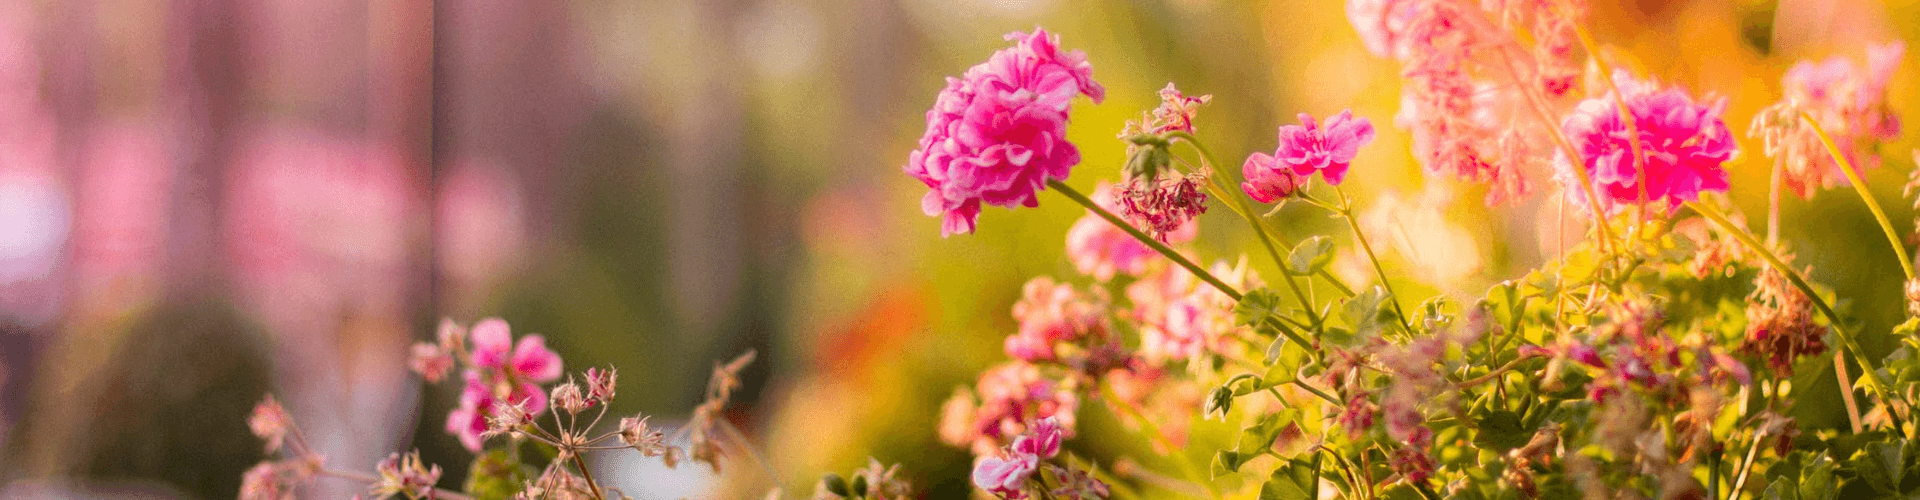 gardening tips to increase property value